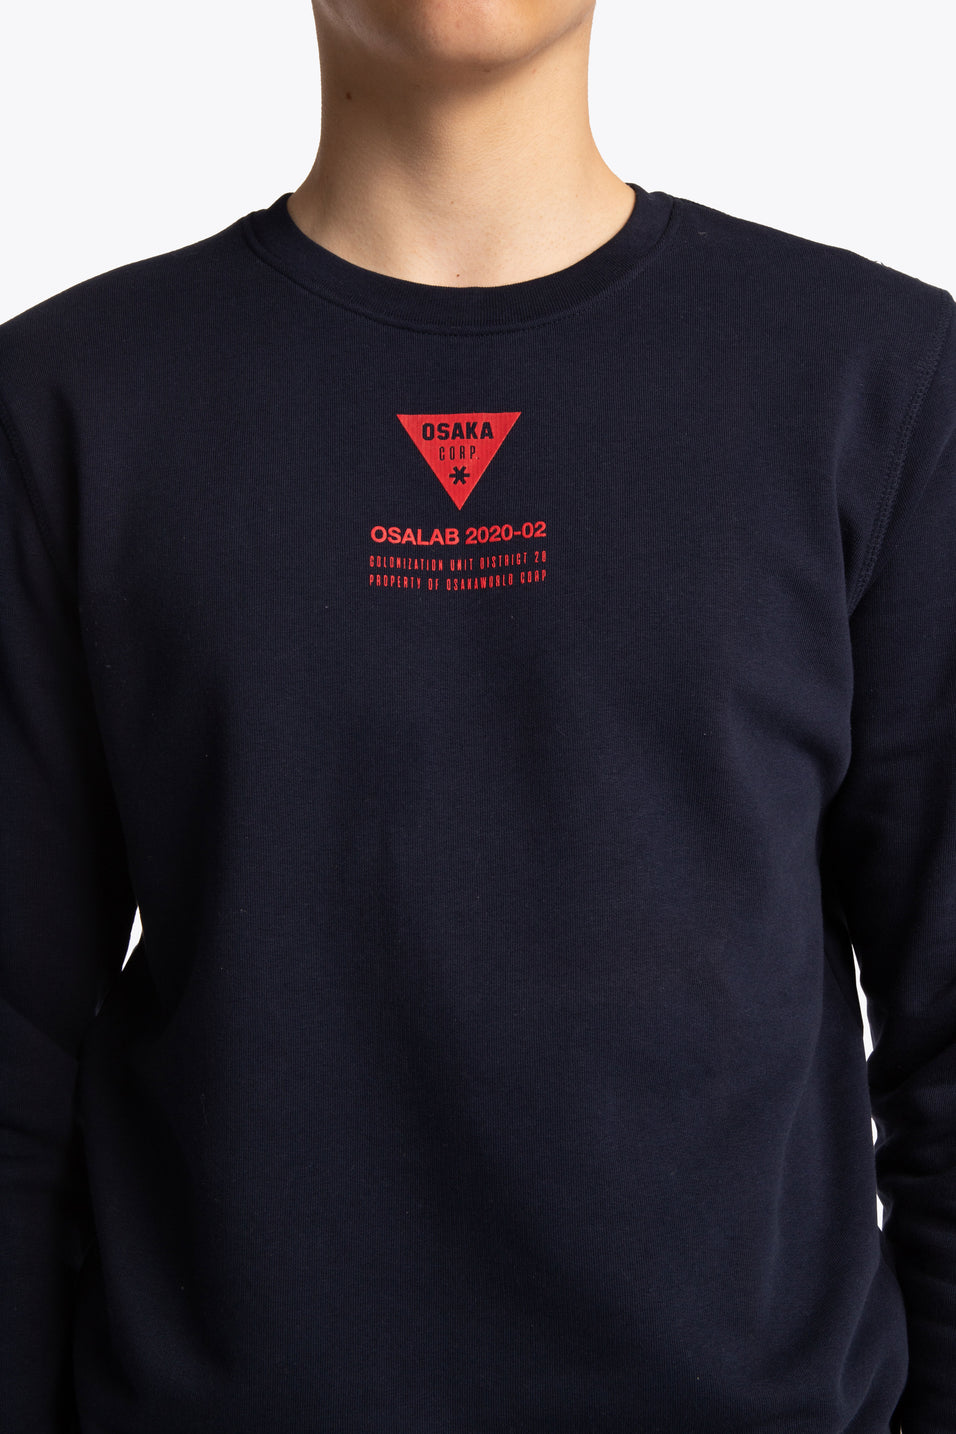 Osaka padel sweater